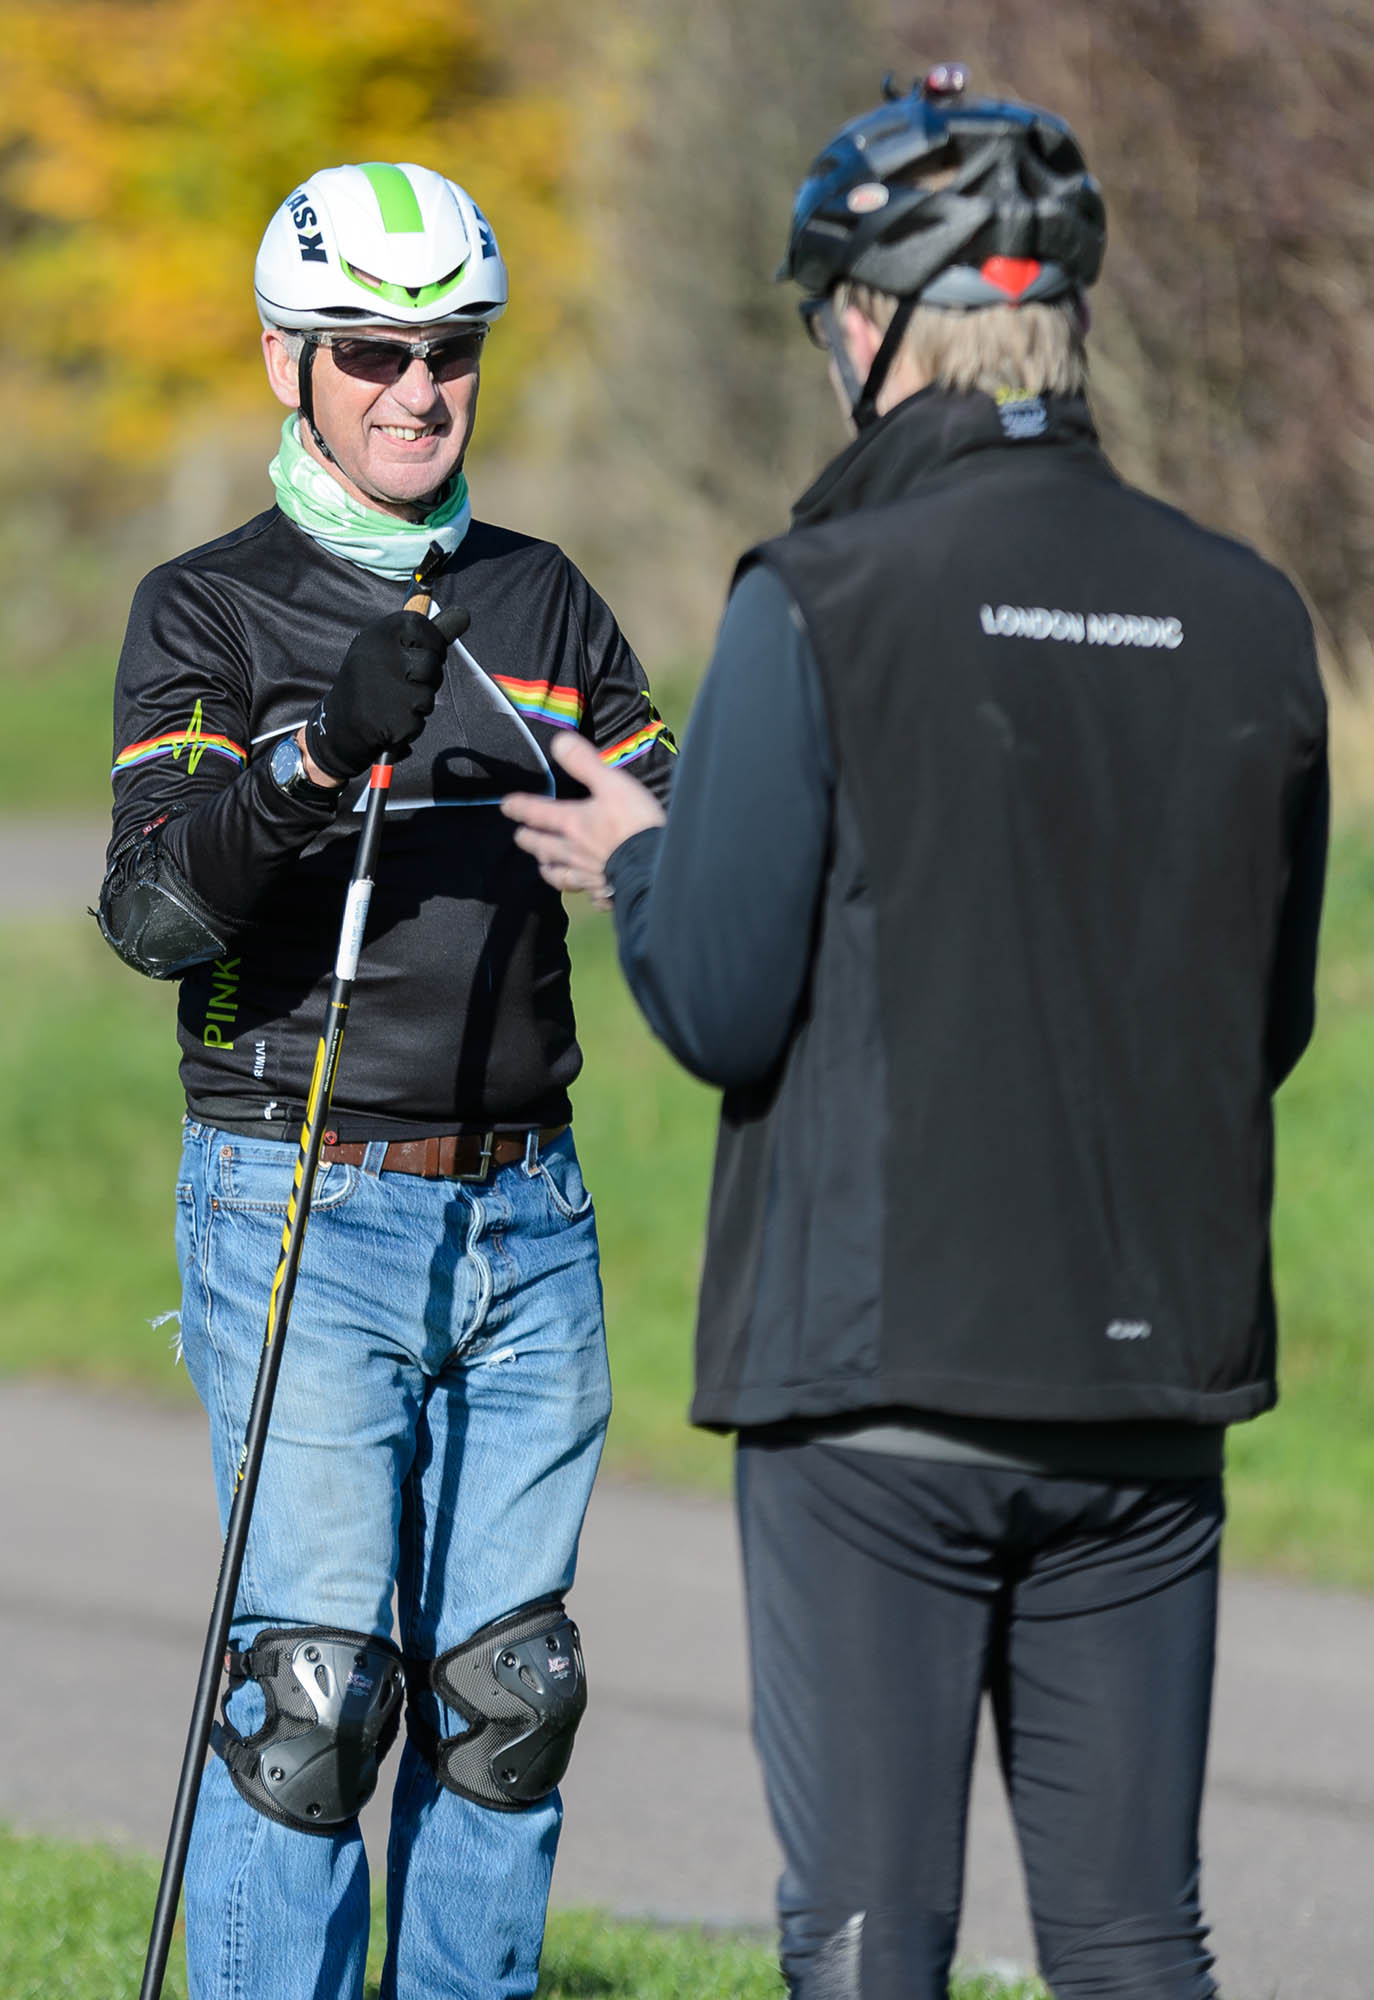 A nordic skiing coaching session